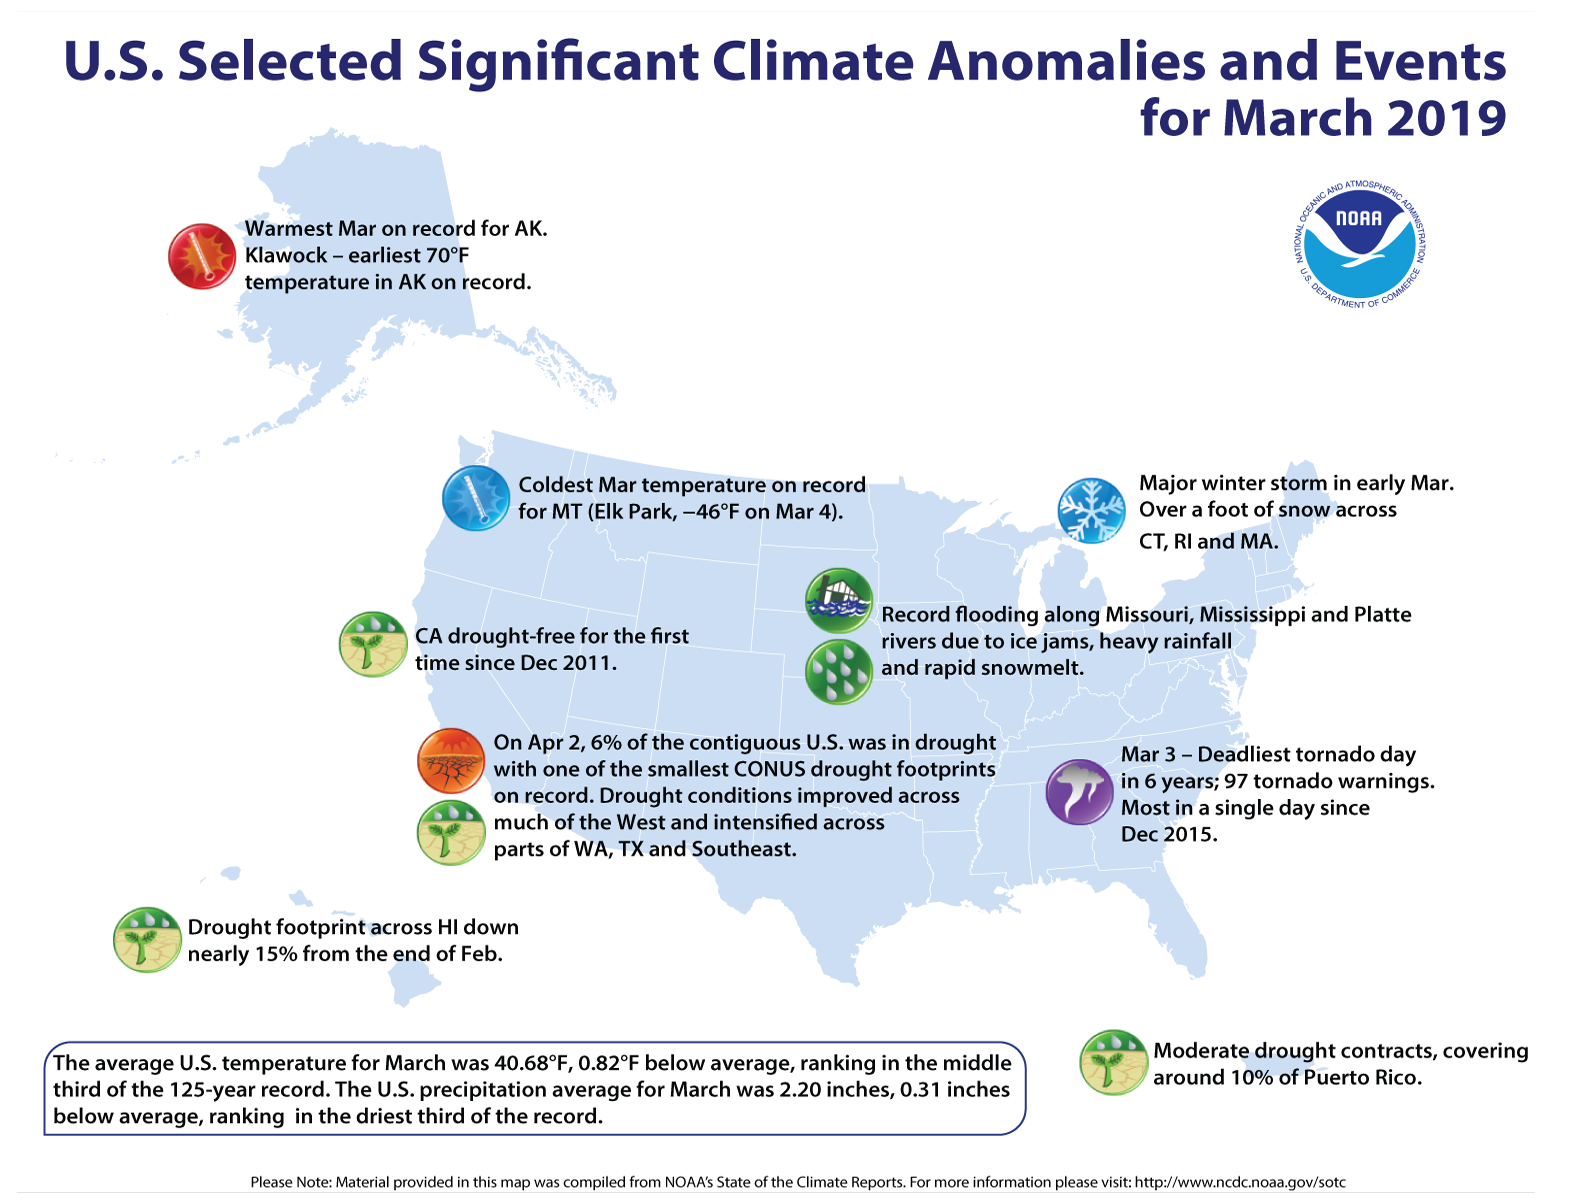 March Extreme Weather/Climate Events